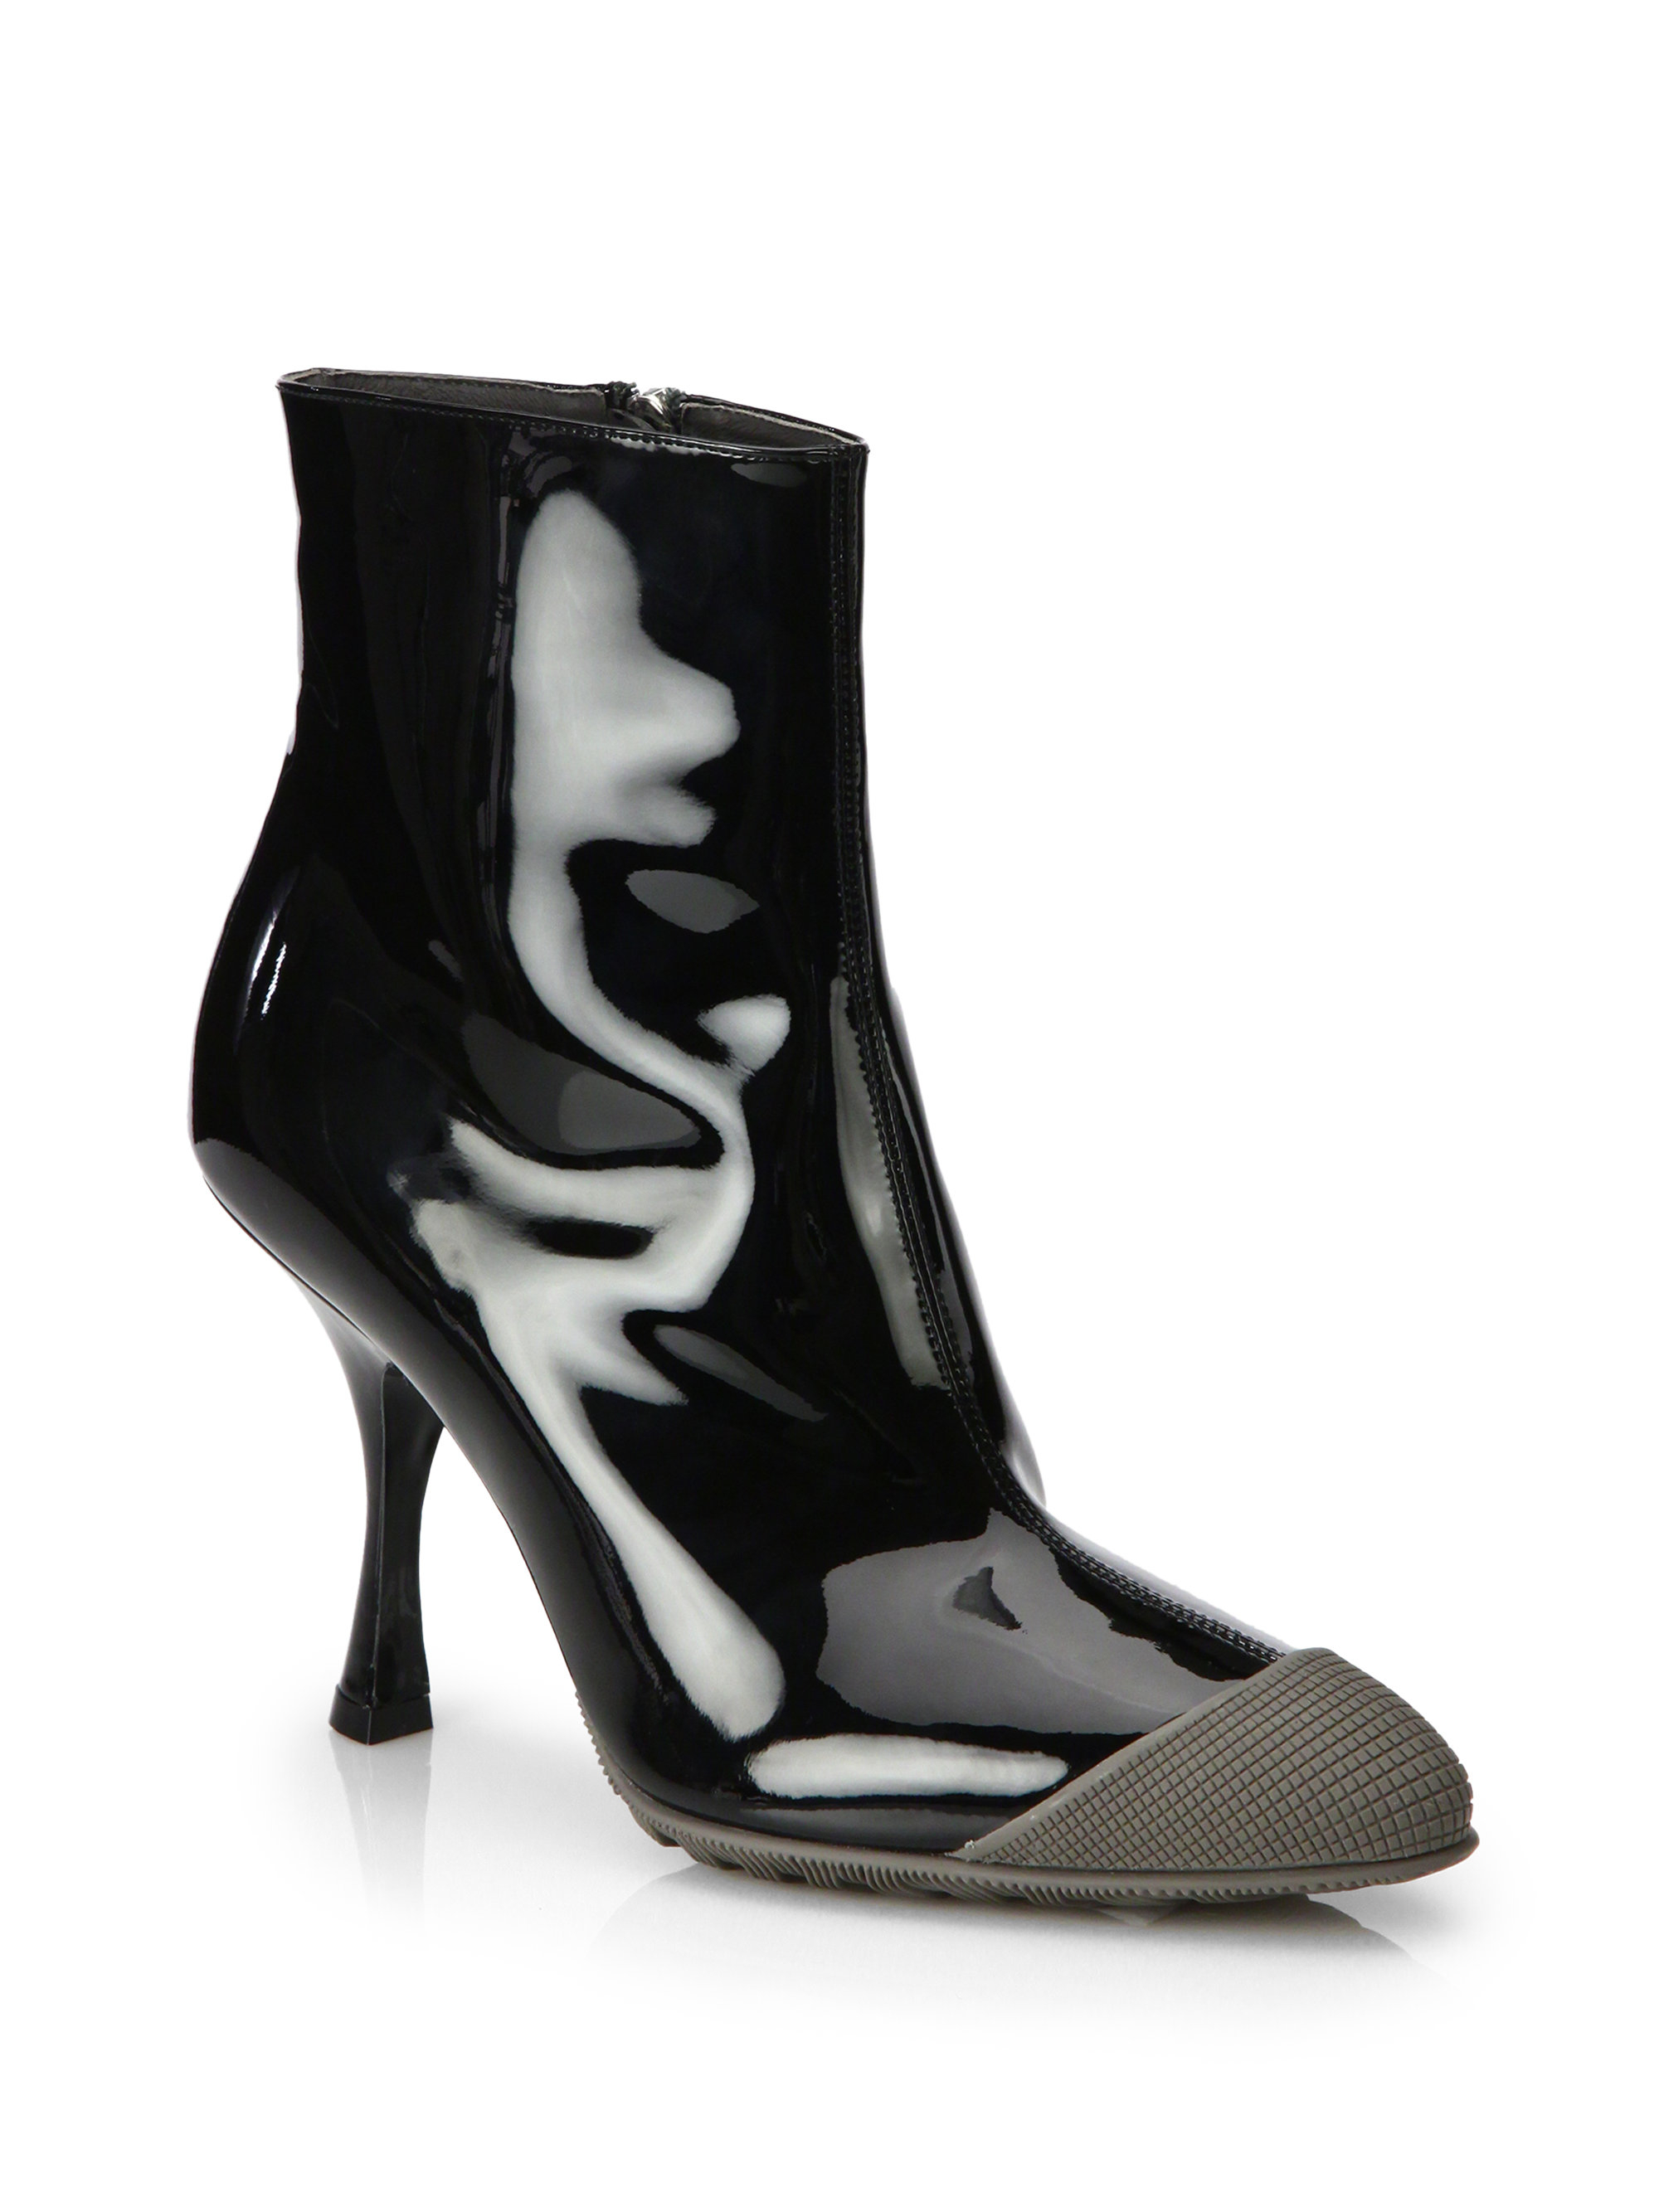 Black Patent Leather High Heeled Shoes